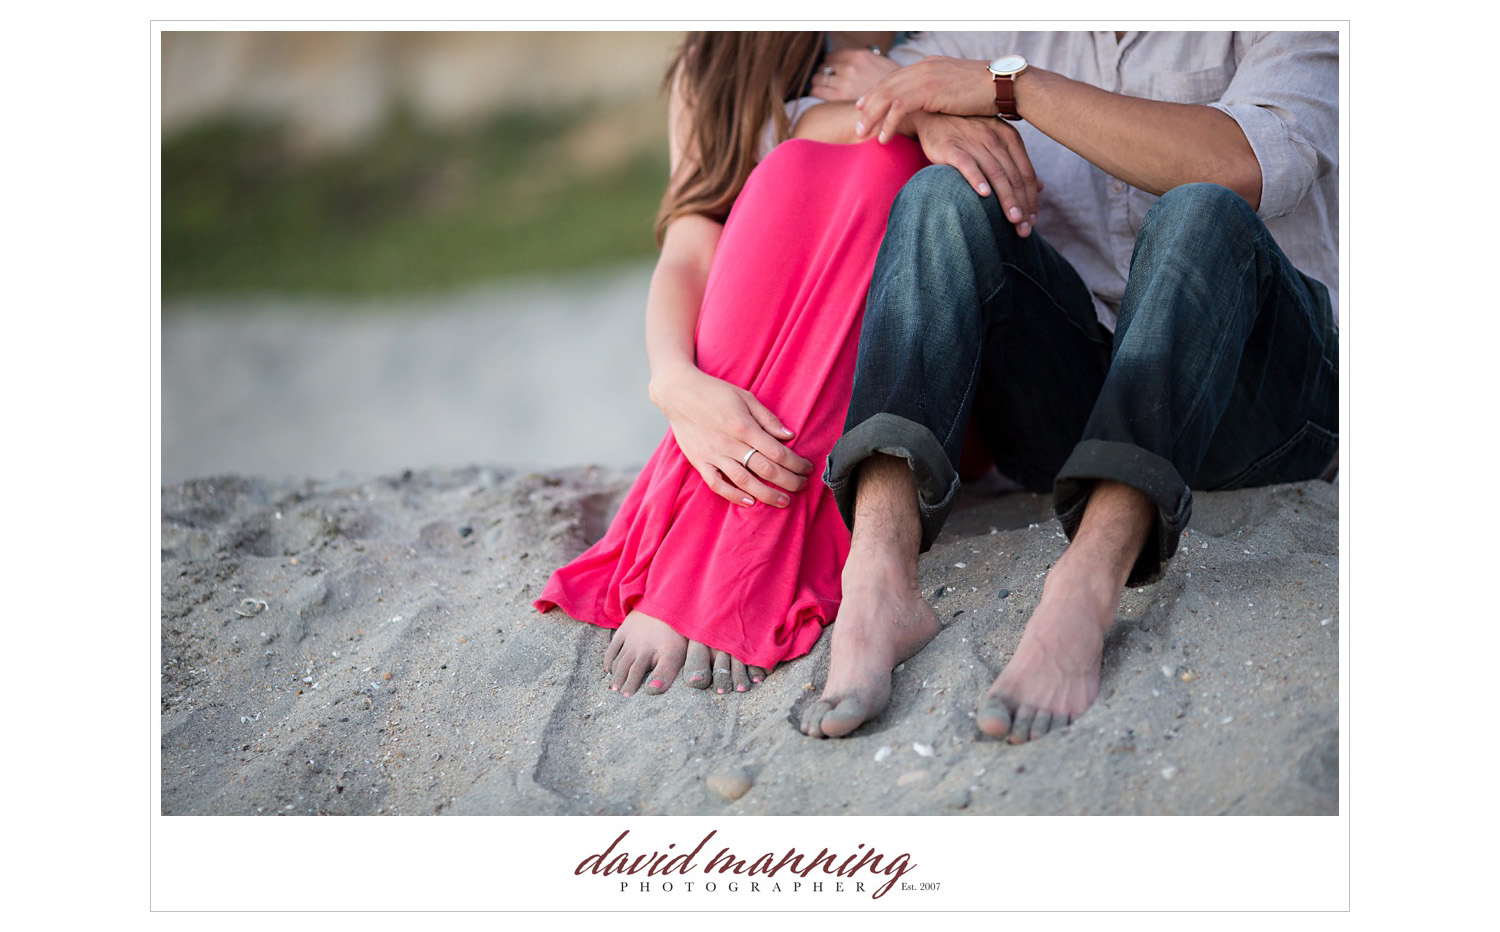 Encinitas-Engagement-Photos-San-Diego-David-Manning_0018.jpg